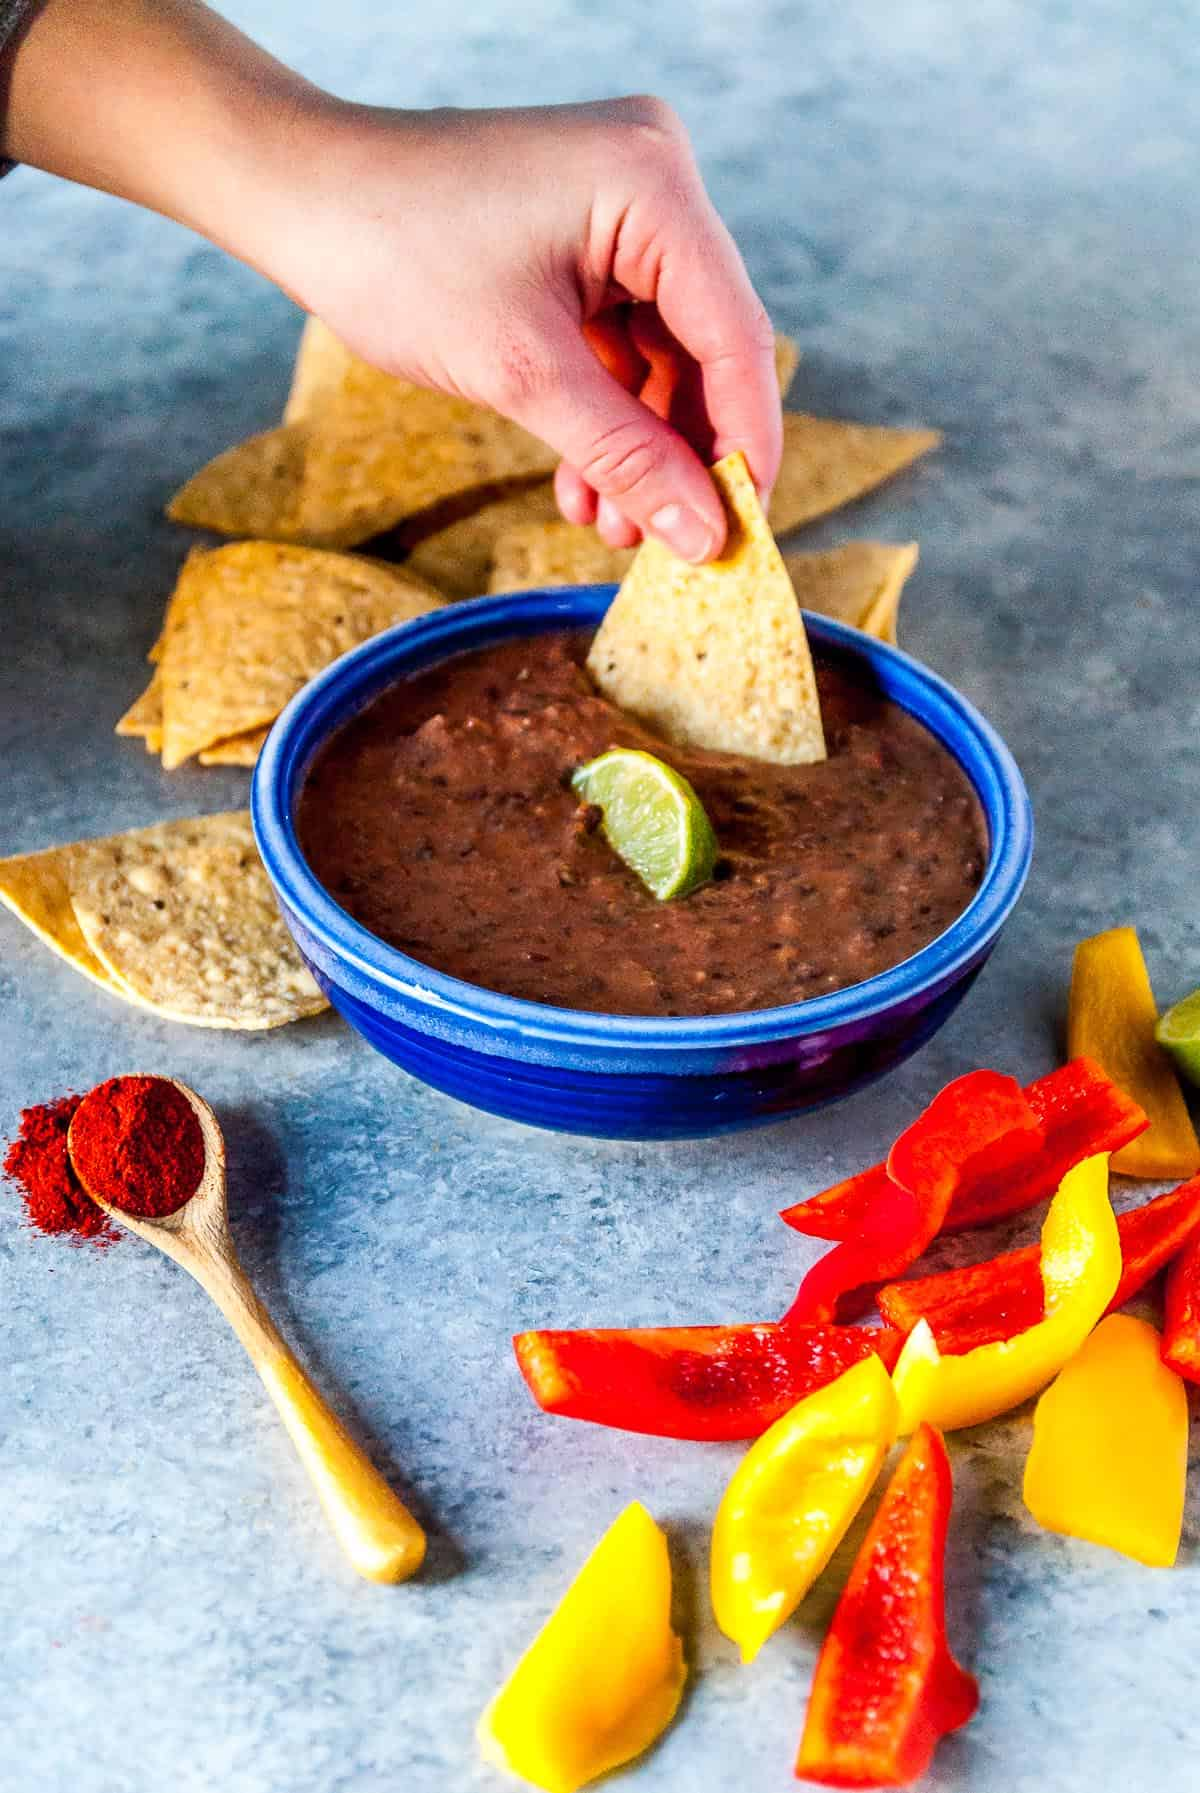 dipping a tortilla chip into vegan black bean dip